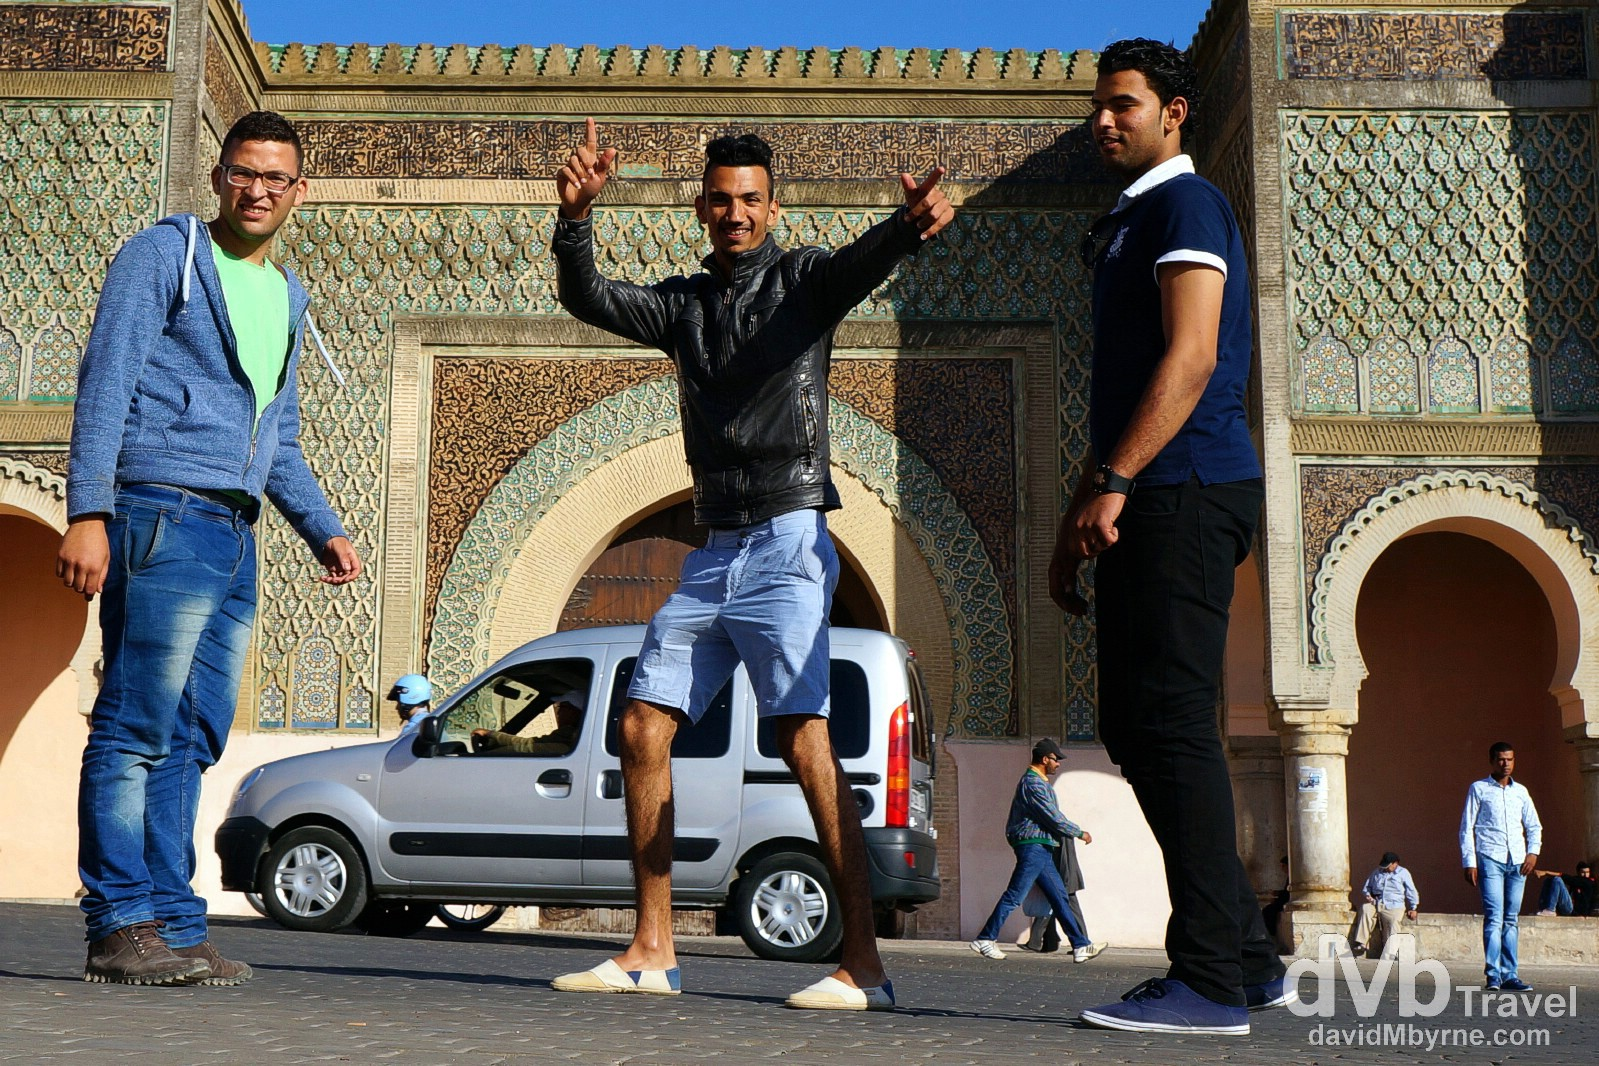 Photobomb in front of the gateway Bob Mansour in Meknes, Morocco. May 23rd, 2014.